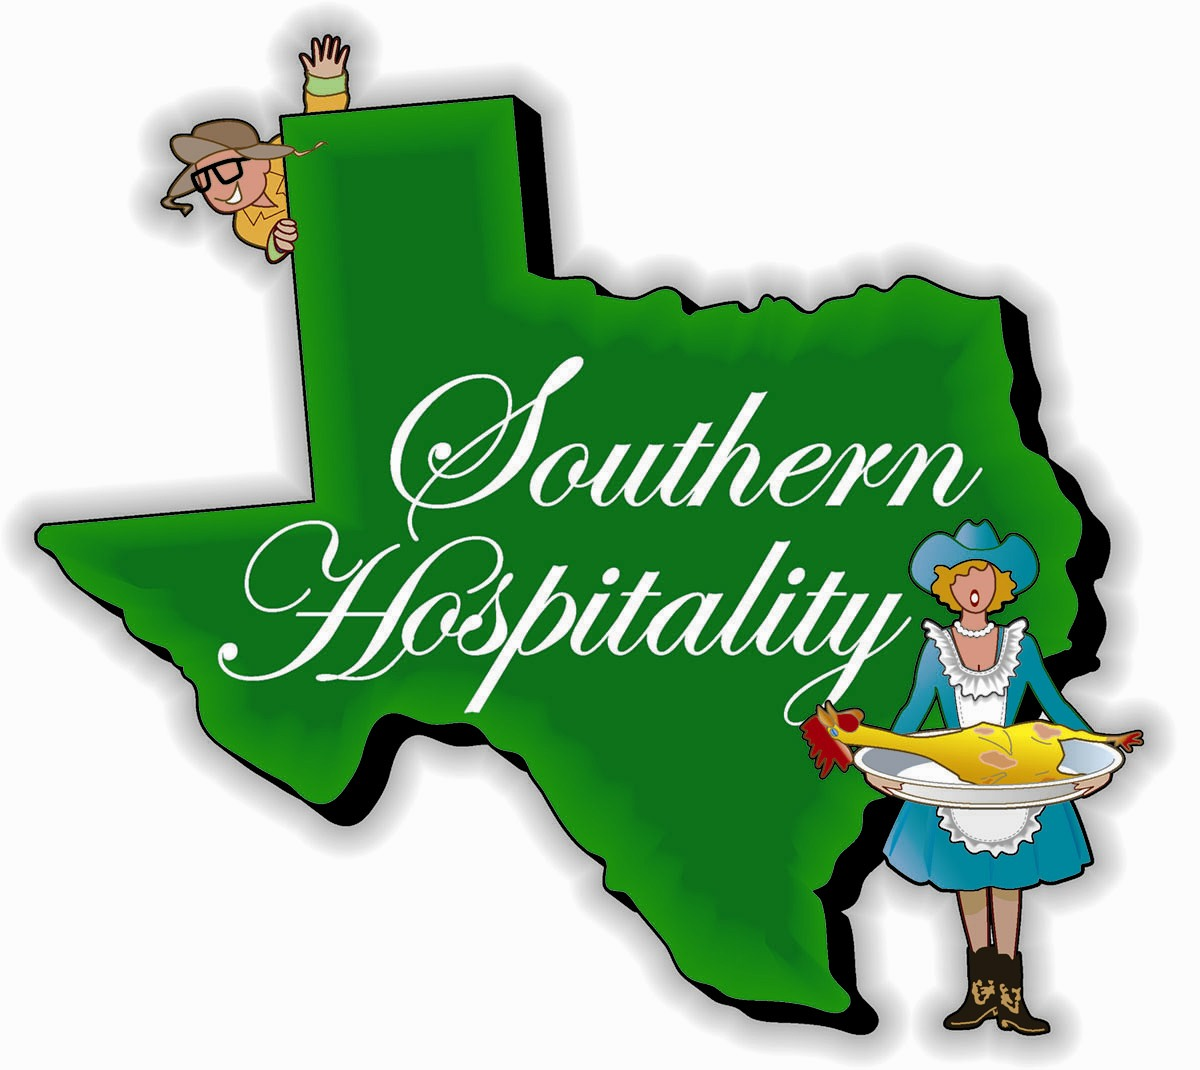 Southern Hospitality Employee Reviews